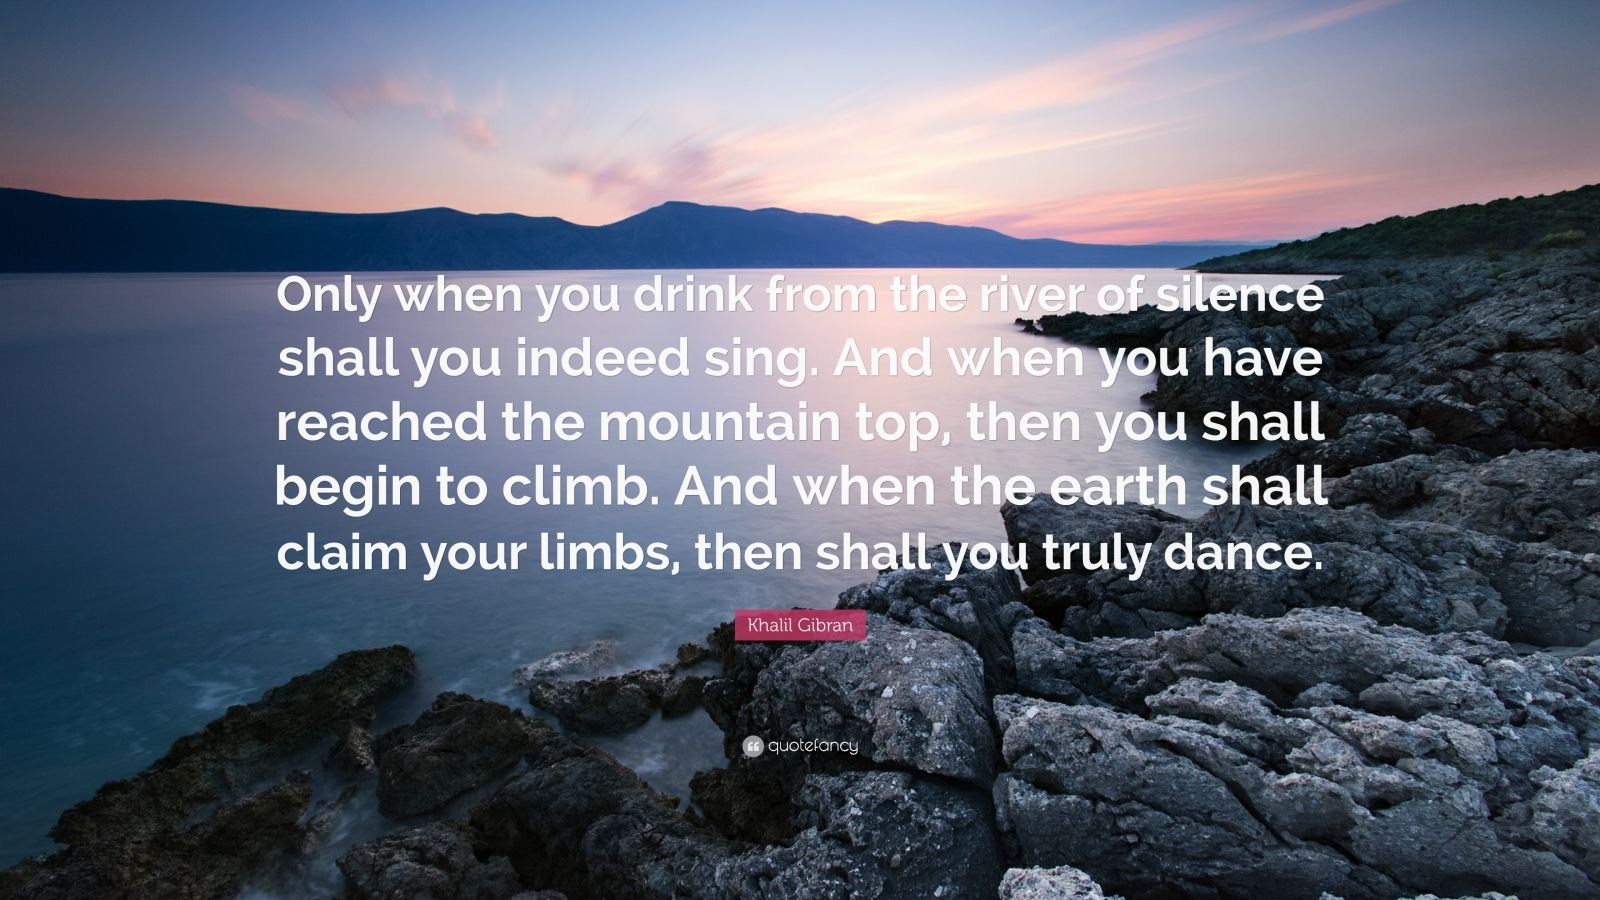 "Khalil Gibran Quote: ""Only when you drink from the river of silence shall you indeed sing. And when you have reached the mountain top, then you shall begin to climb. And when the earth shall claim your limbs, then shall you truly dance."""